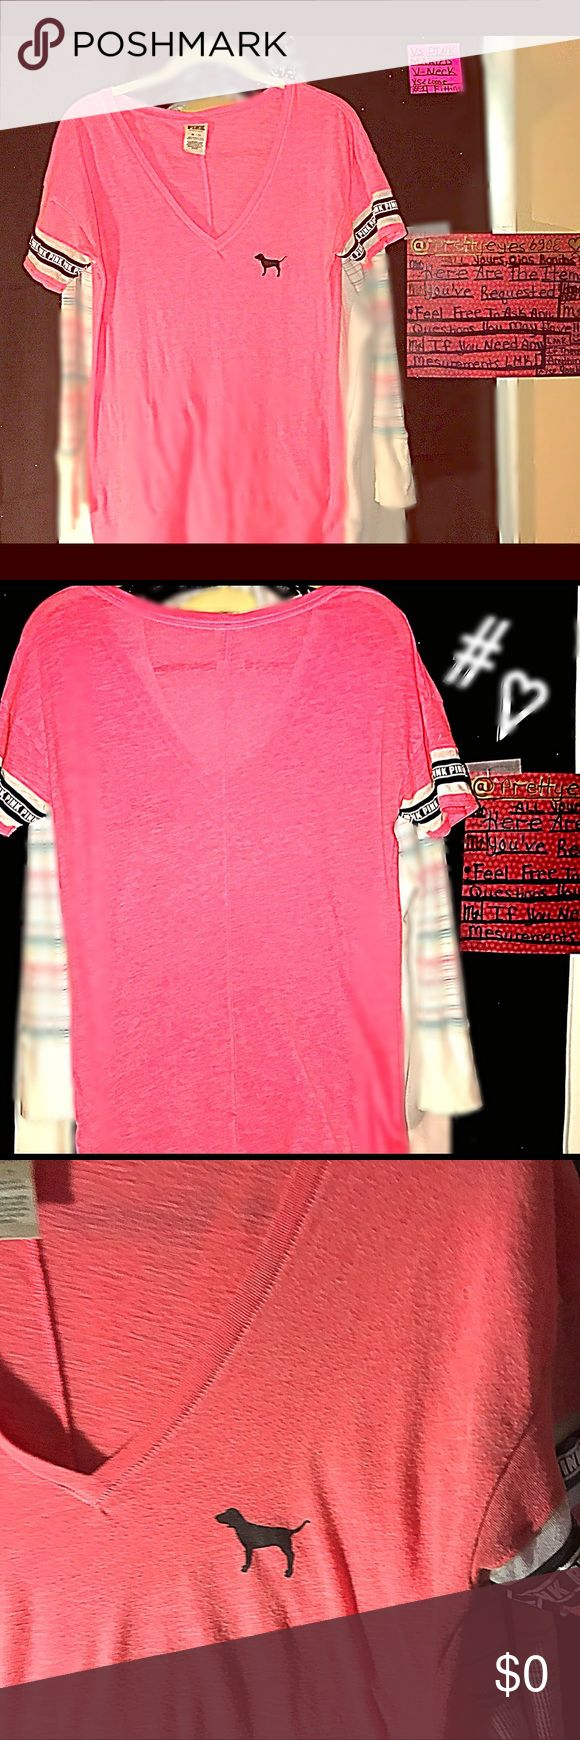 💞PENDING💌TRADE💞PINK~Marled-Pink W/LOGO<Banded VS PINK MARLED PINK BLACK~BANDED SLEVES WITH THE LOGO~PINK~WHITE LETTERS<PINK! DEEP V-NECK TEE BLACK DOG🐾 ON LEFT BREAST! HAS A LOOSER FIT BUT NOT OVERSIZED! SUPER SOFT & COMFORTABLE WITH A SEAM DOWN THE BACK FOR A MORE FLATTERING FIT COMES RIGHT BELOW THE BELT LINE! 🎀🖤🎀PRETTY & HTF IN THIS COLOR!! EXCELLENT CONDITION NO FLAWLESS!! PINK Victoria's Secret Tops Tees - Short Sleeve